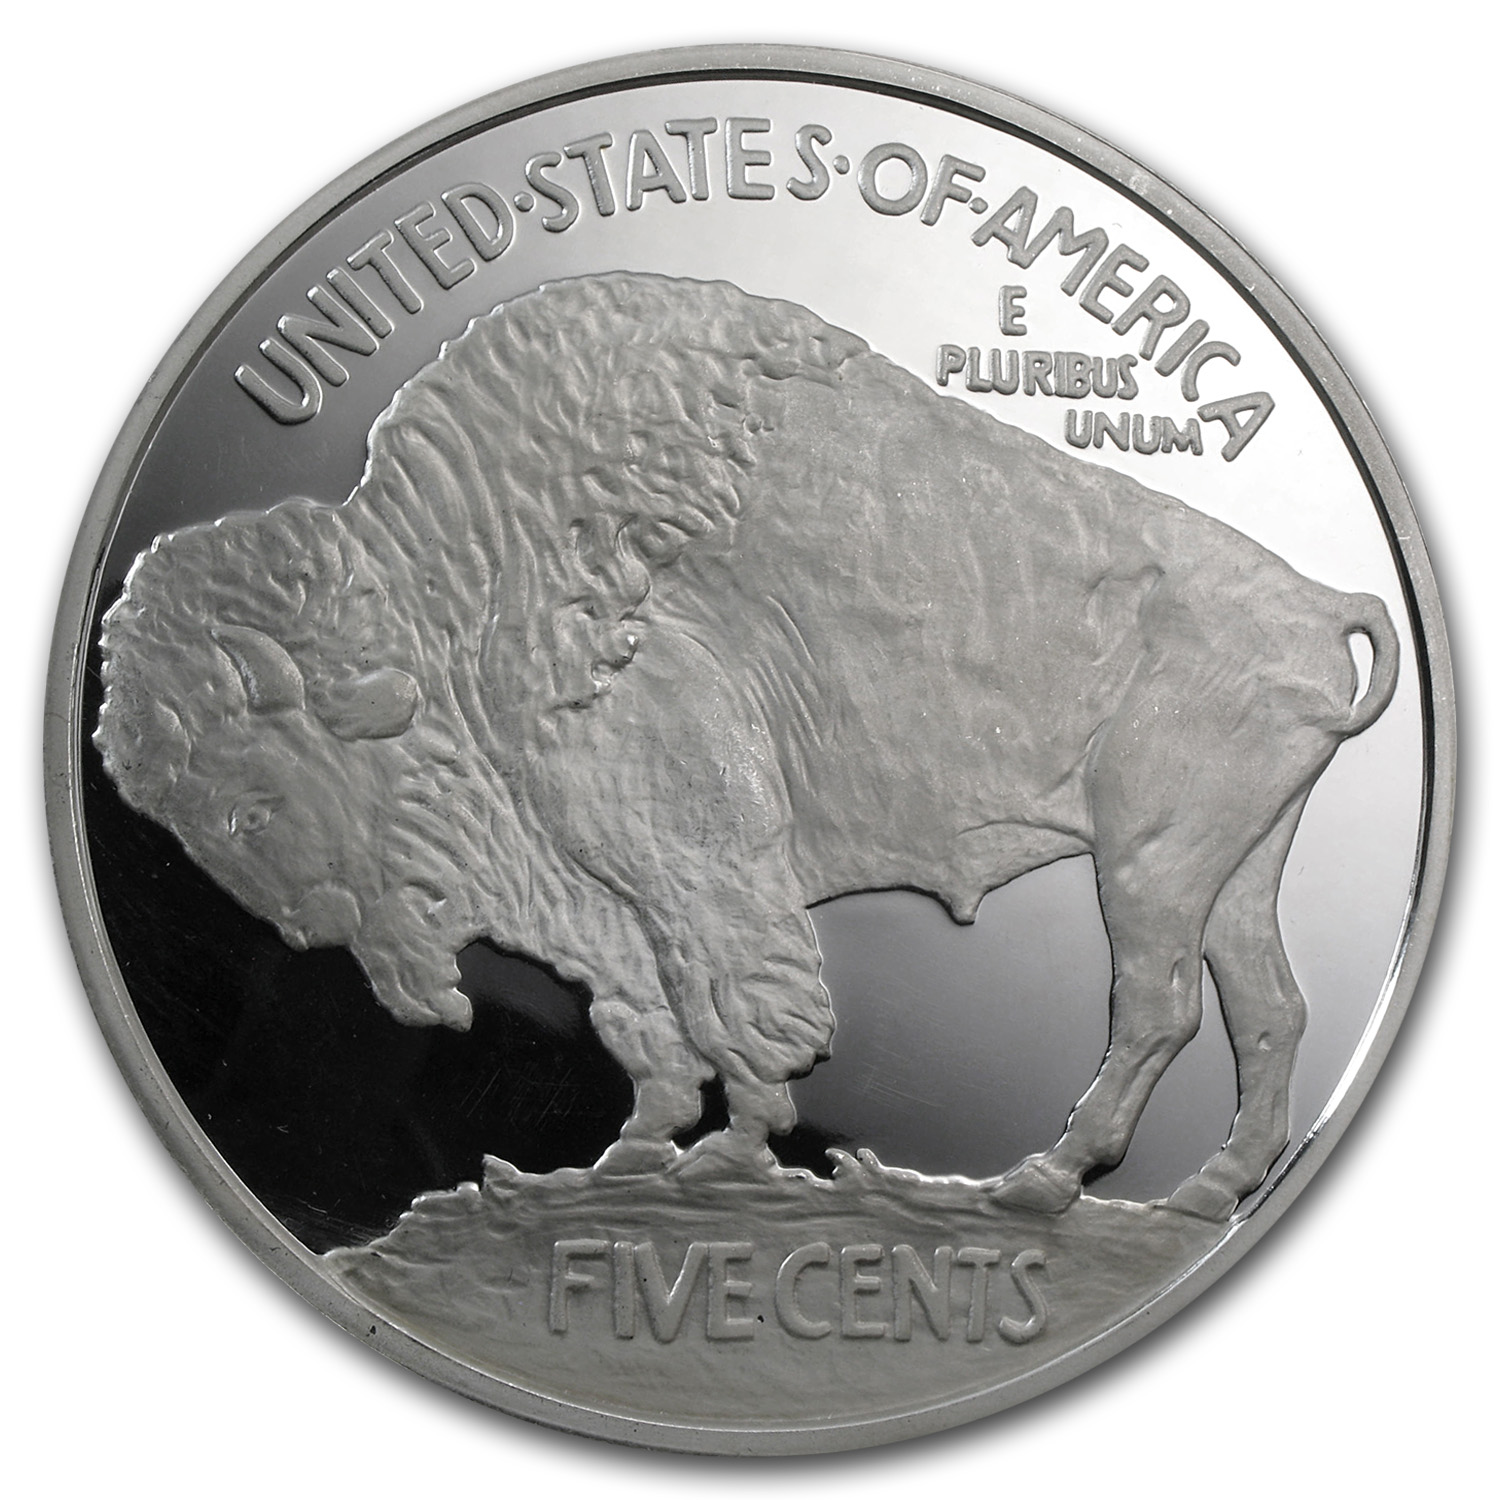 6 oz Silver Round - Buffalo Nickel (Replica)